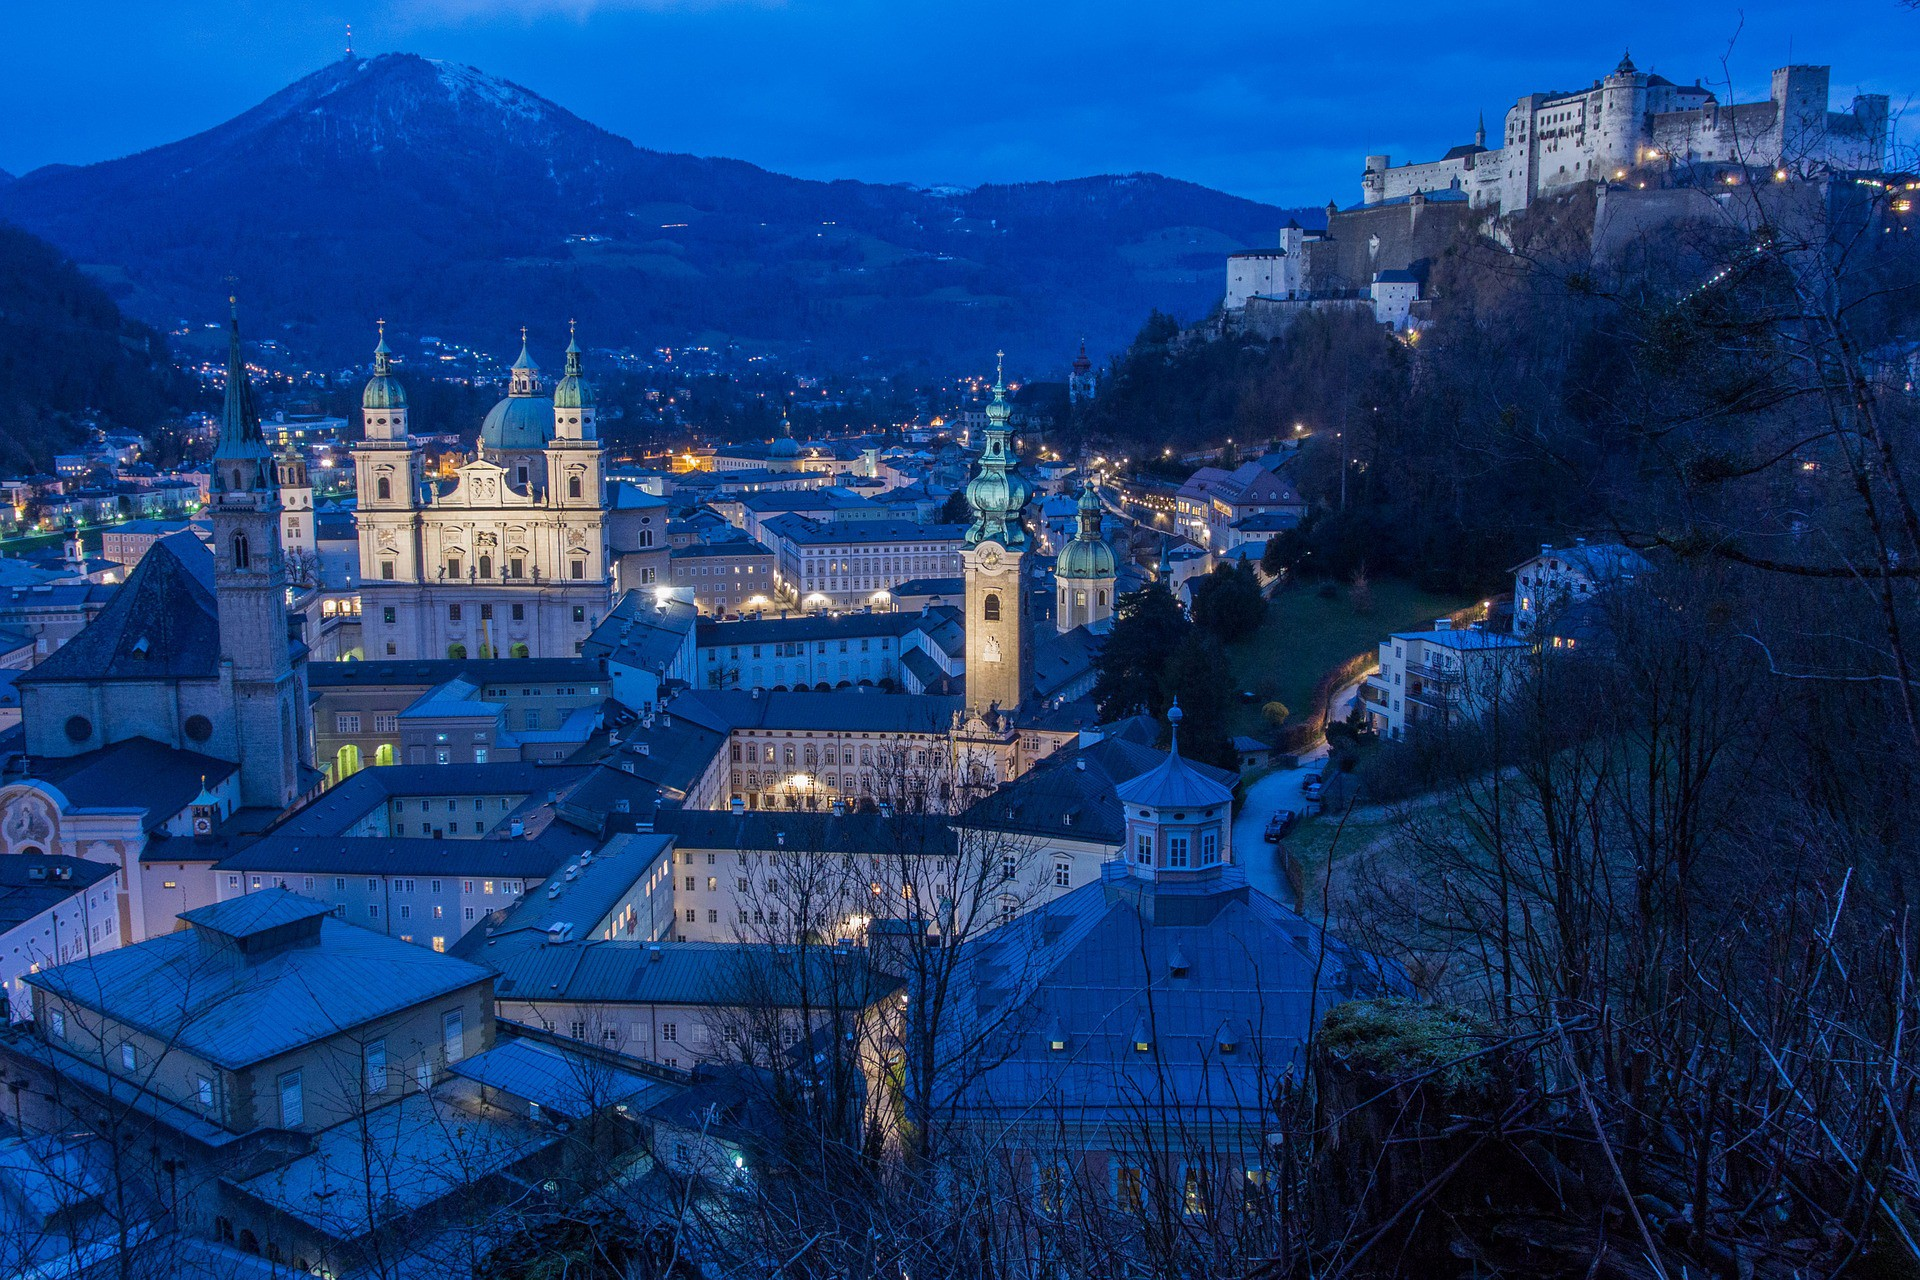 "<a href = ""https://www.shutterstock.com/image-photo/beautiful-view-salzburg-skyline-festung-hohensalzburg-192619130?irgwc=1&utm_medium=Affiliate&utm_campaign=Hans%20Braxmeier%20und%20Simon%20Steinberger%20GbR&utm_source=44814""> Salzburg, At Night 